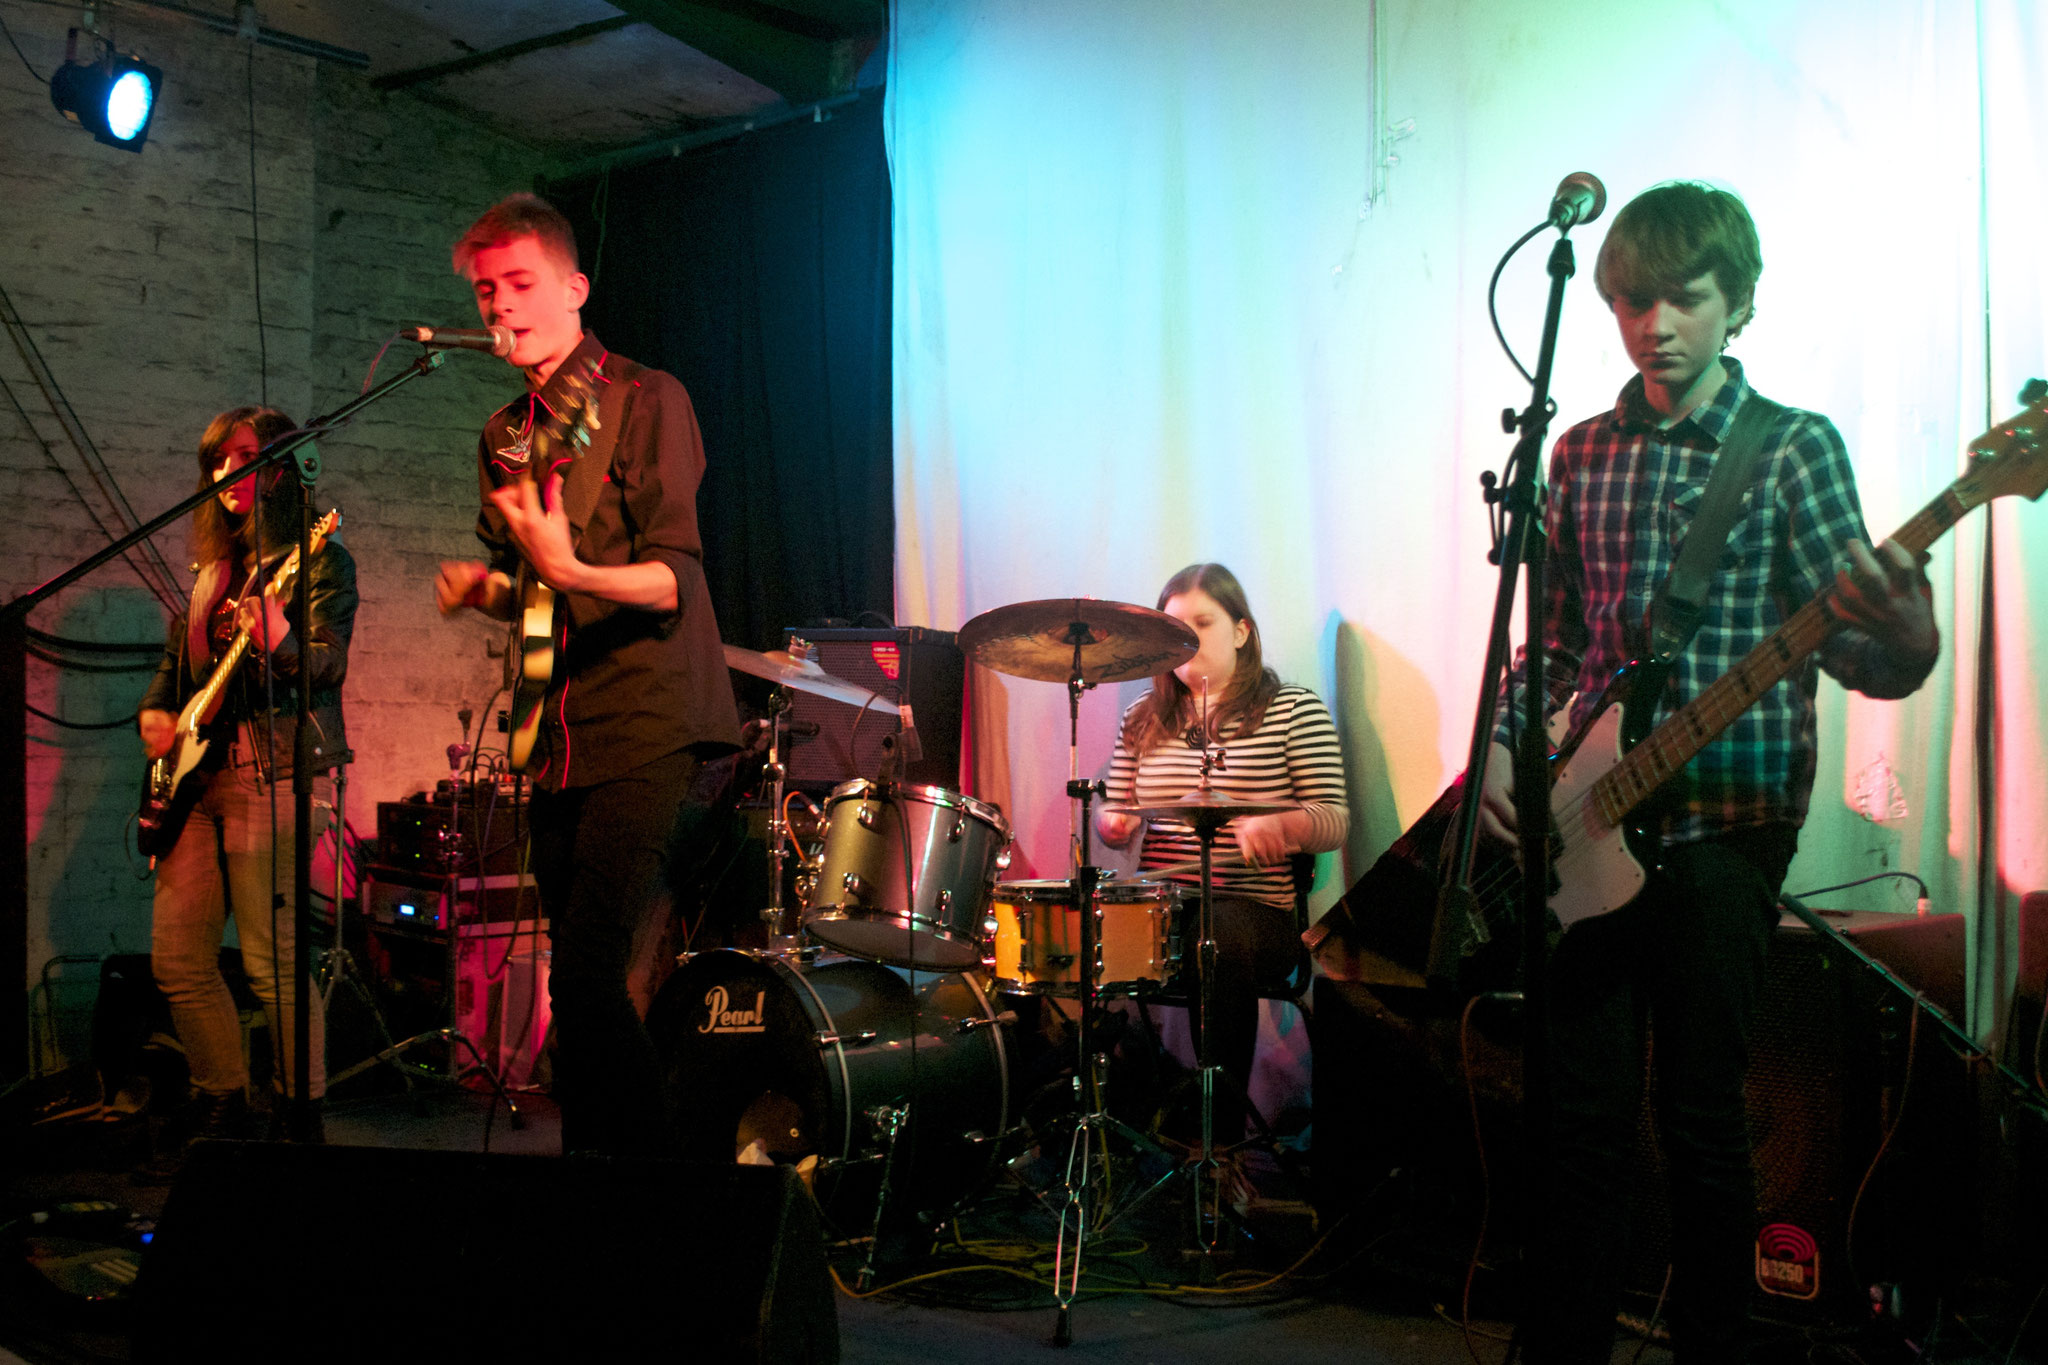 grasshopper @ Green Door Store, Brighton - 17/02/14. Credit: Richard Ward.